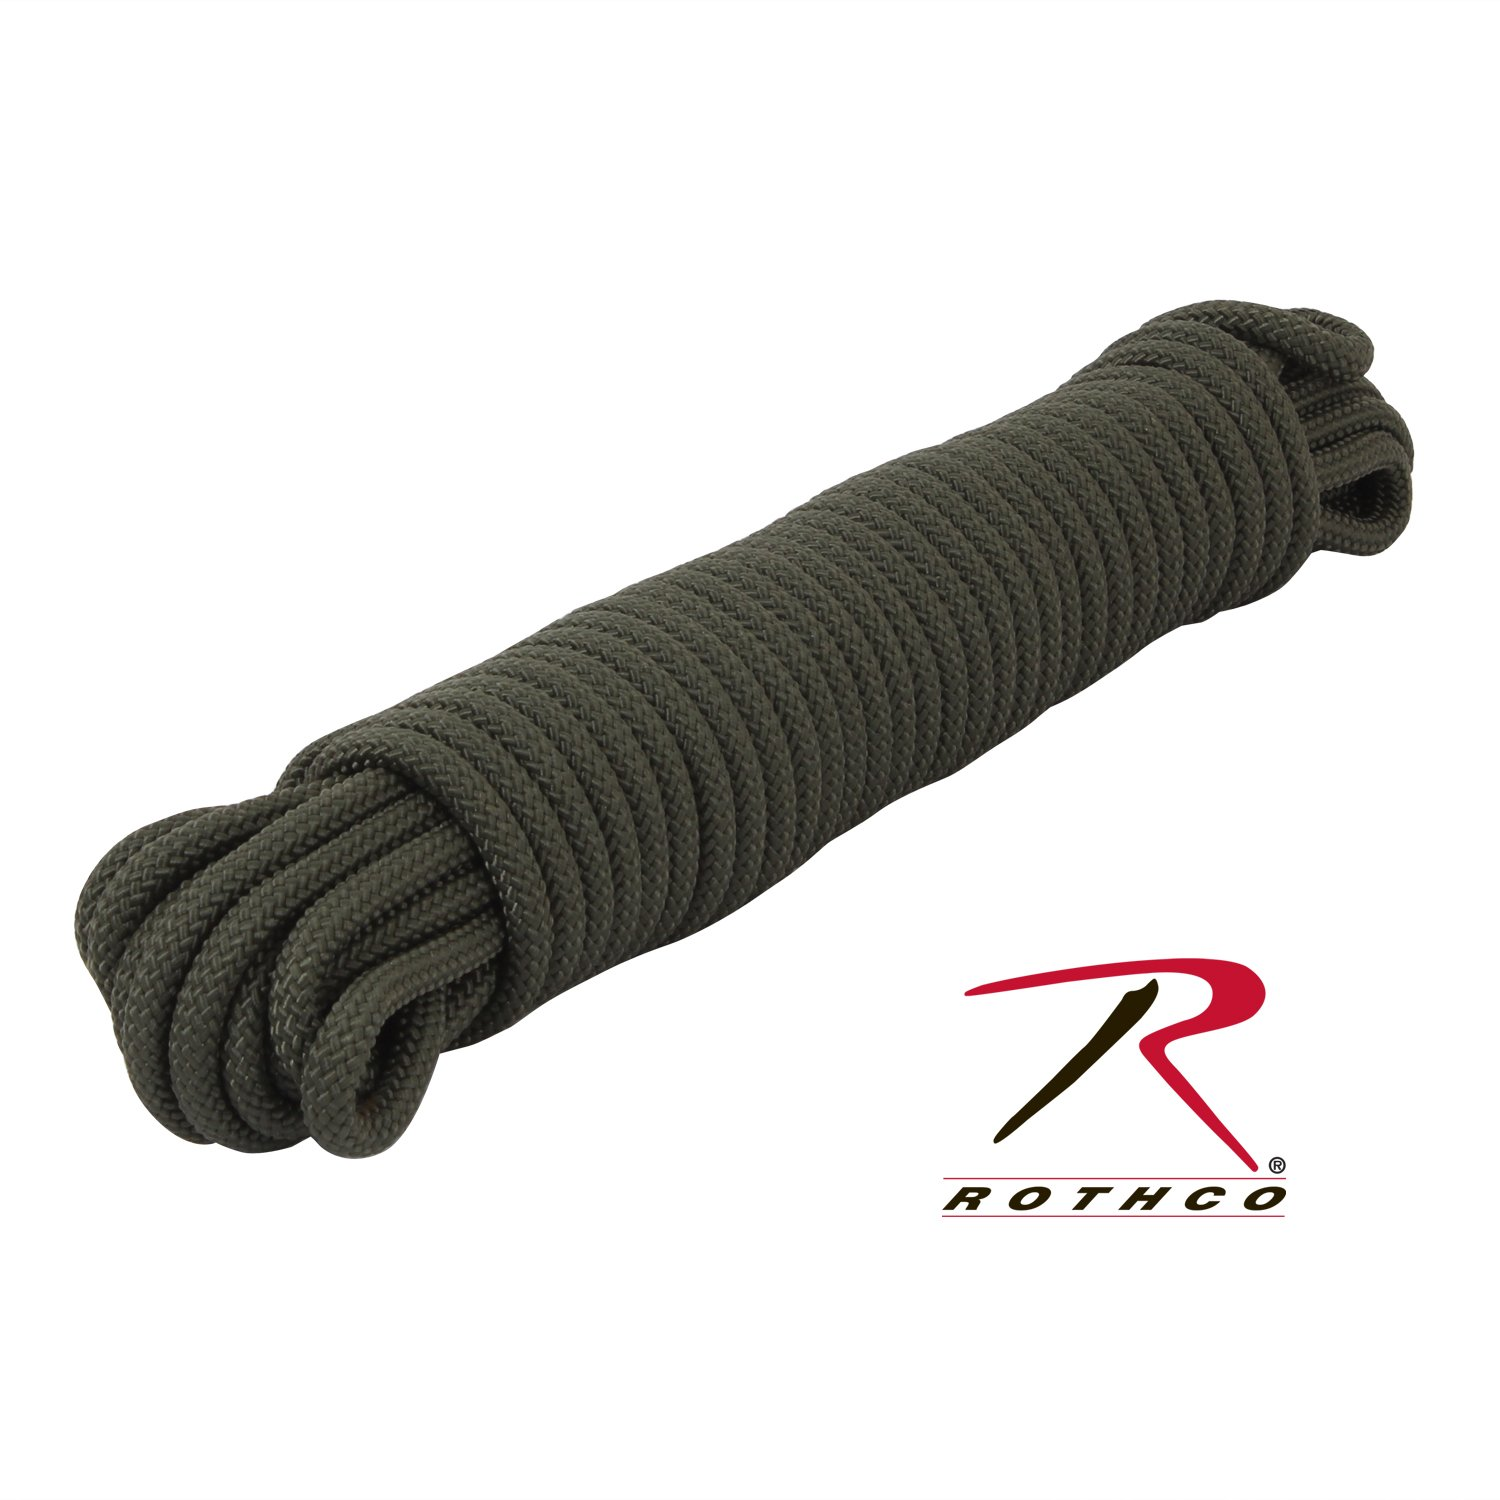 ROTHCO UTILITY ROPE 3/8'' 50 FT / OLIVE DRAB